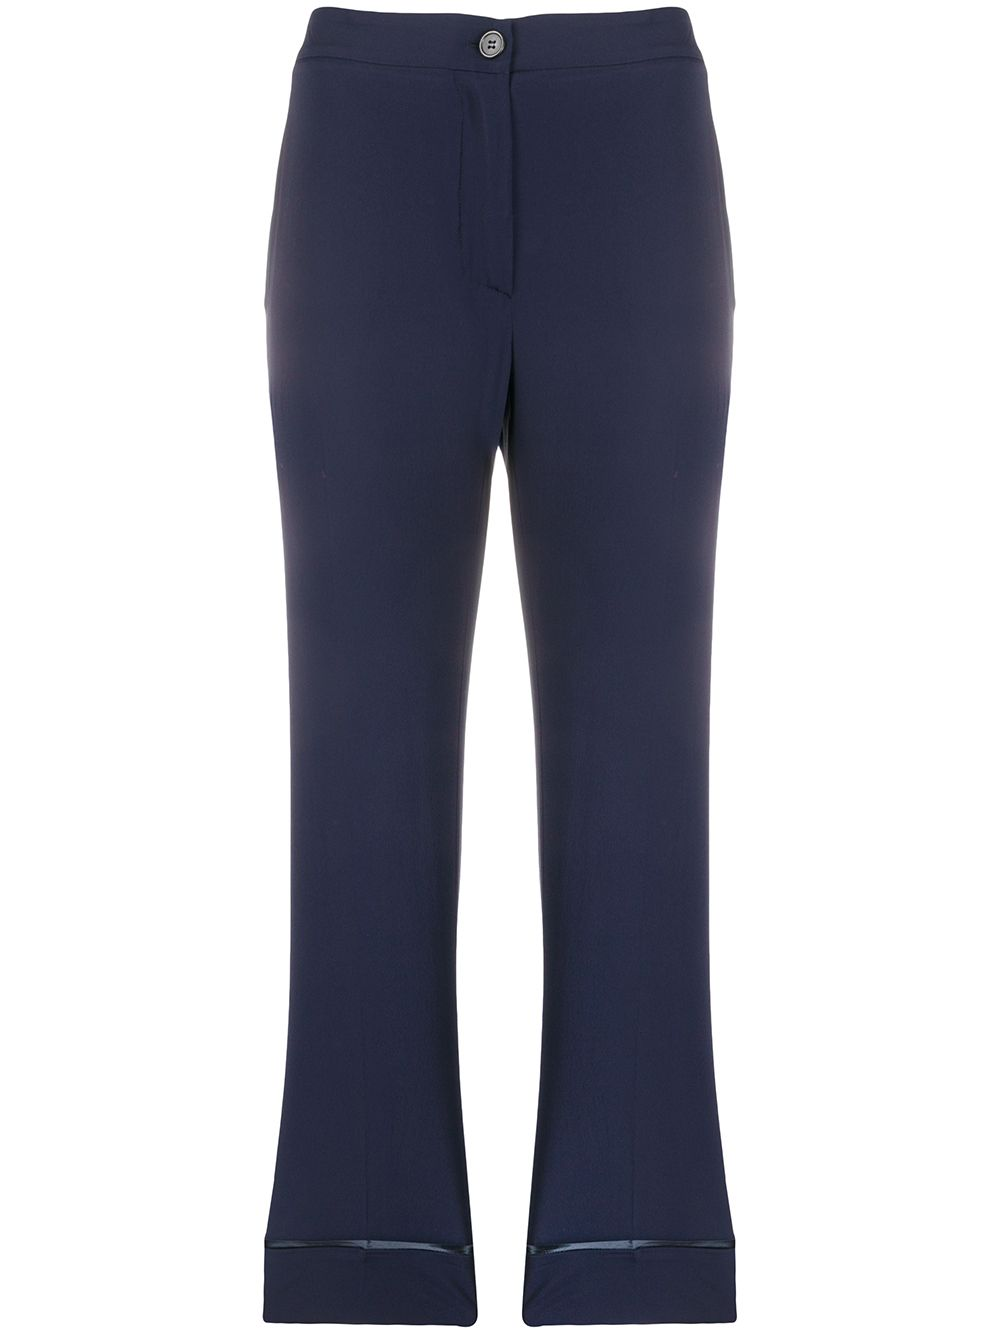 Coraline Trousers